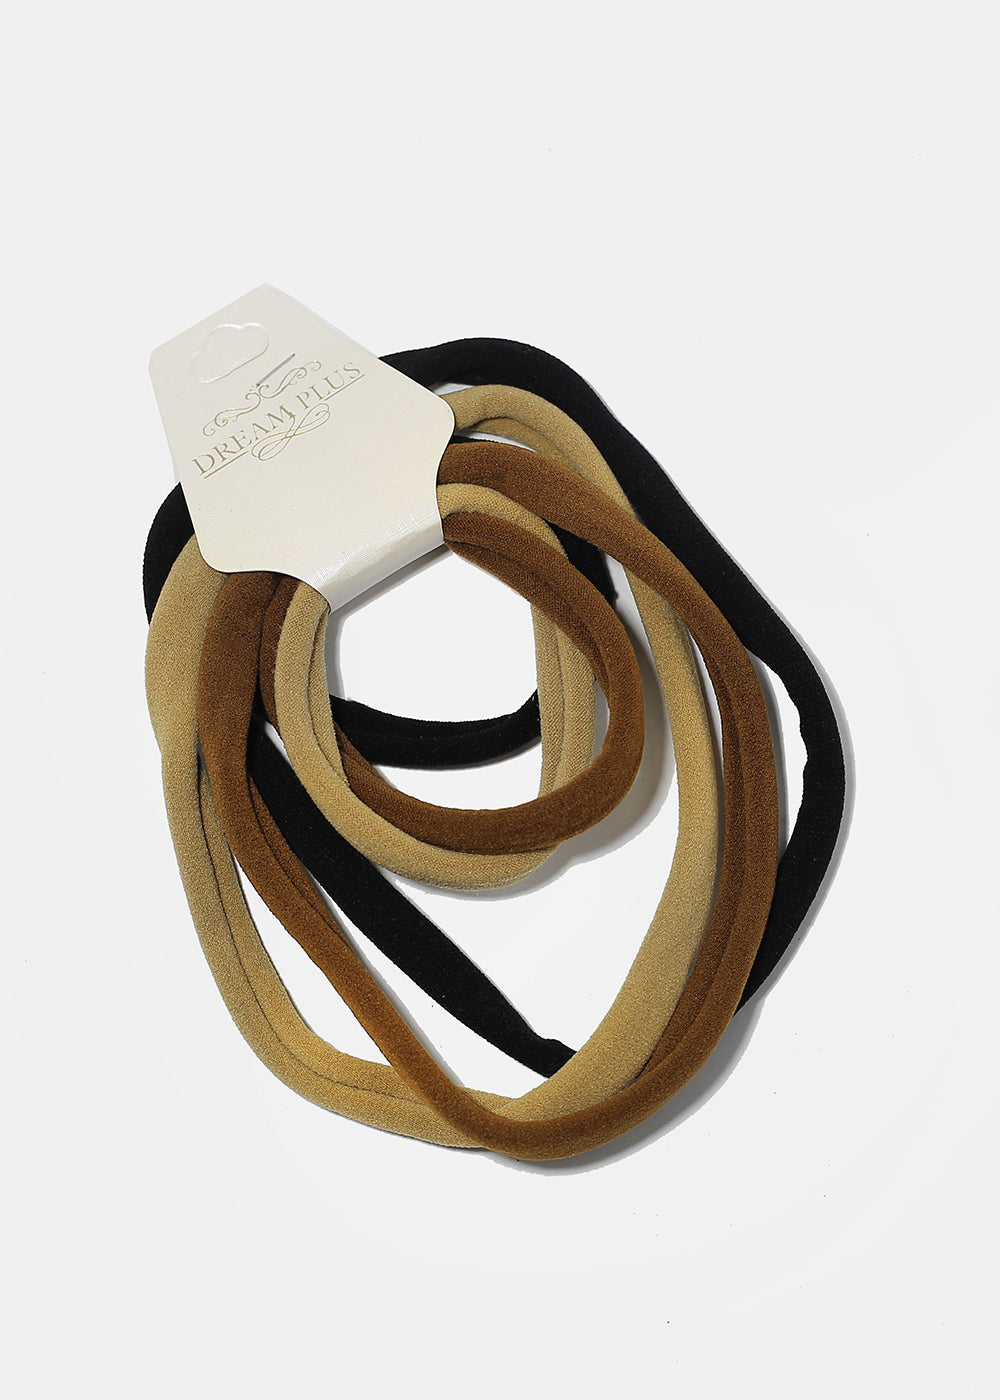 6-Piece Neutral Tone Multi-Size Hair Ties